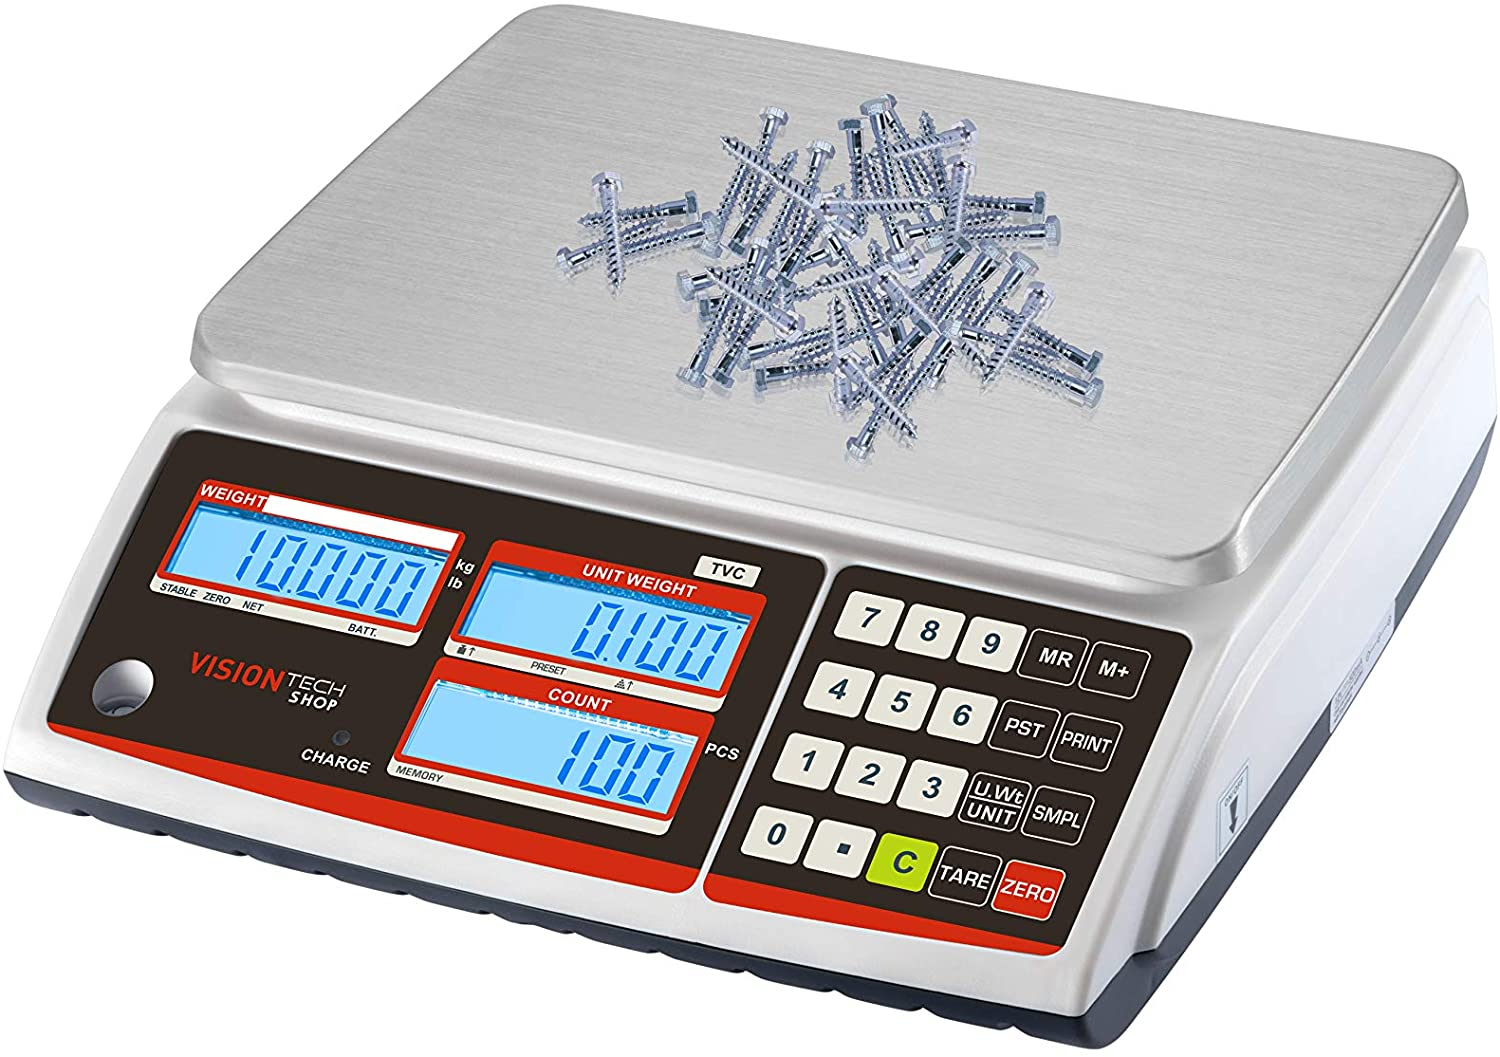 VisionTechShop TVC-30 Counting Scale for Parts and Coins, Lb/Kg Switchable, 30lb Capacity, 0.001lb Readability